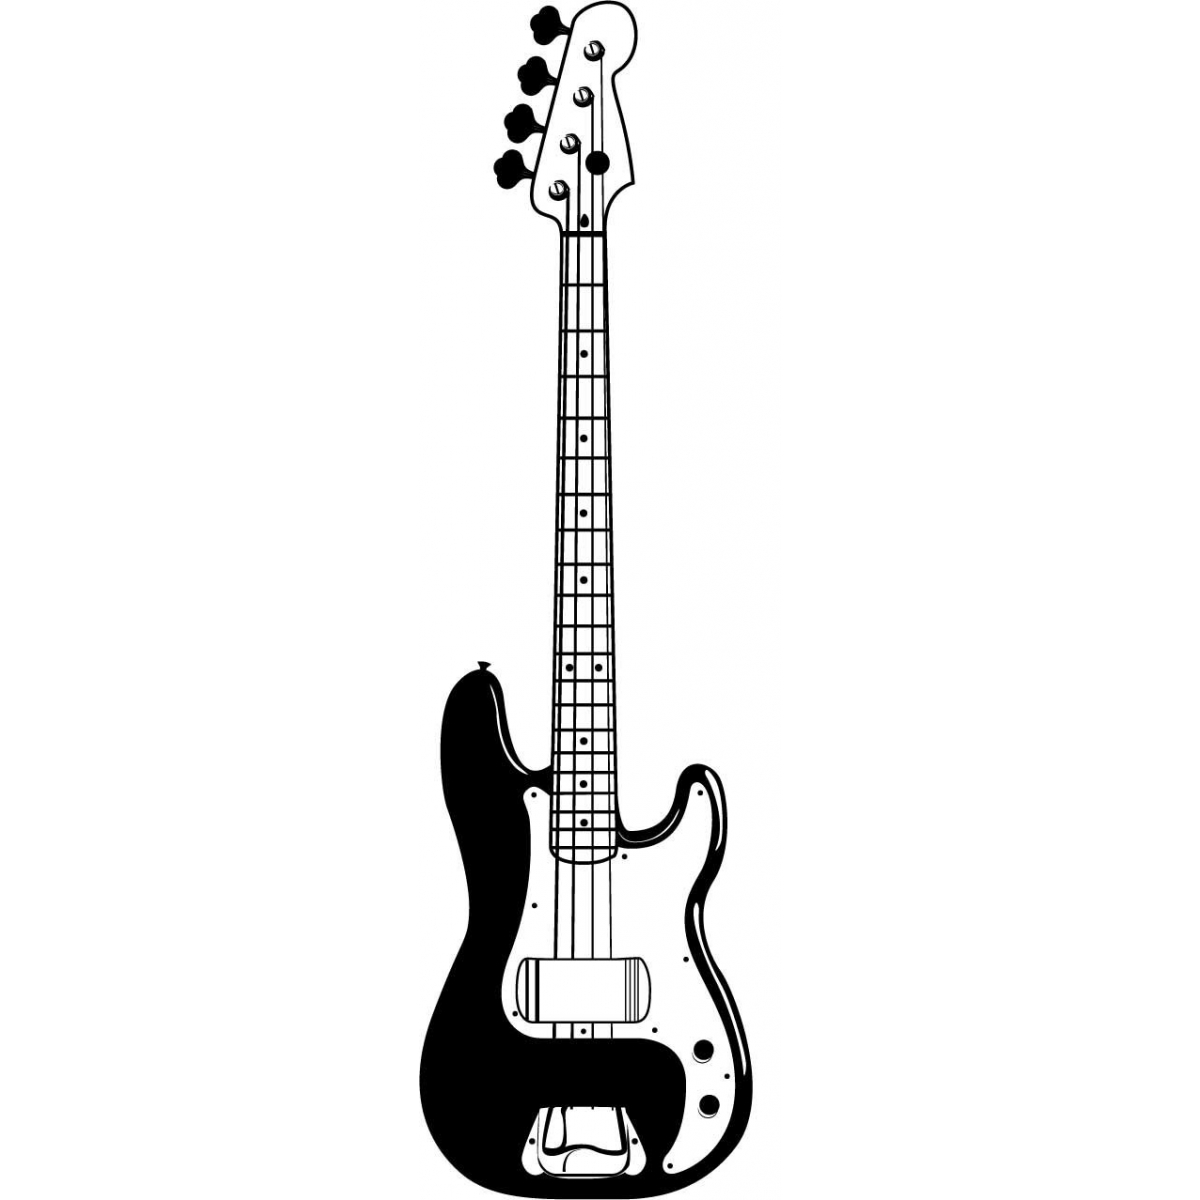 Free electric guitar black and white clipart graphic transparent Guitar black and white picture of an electric guitar free download ... graphic transparent